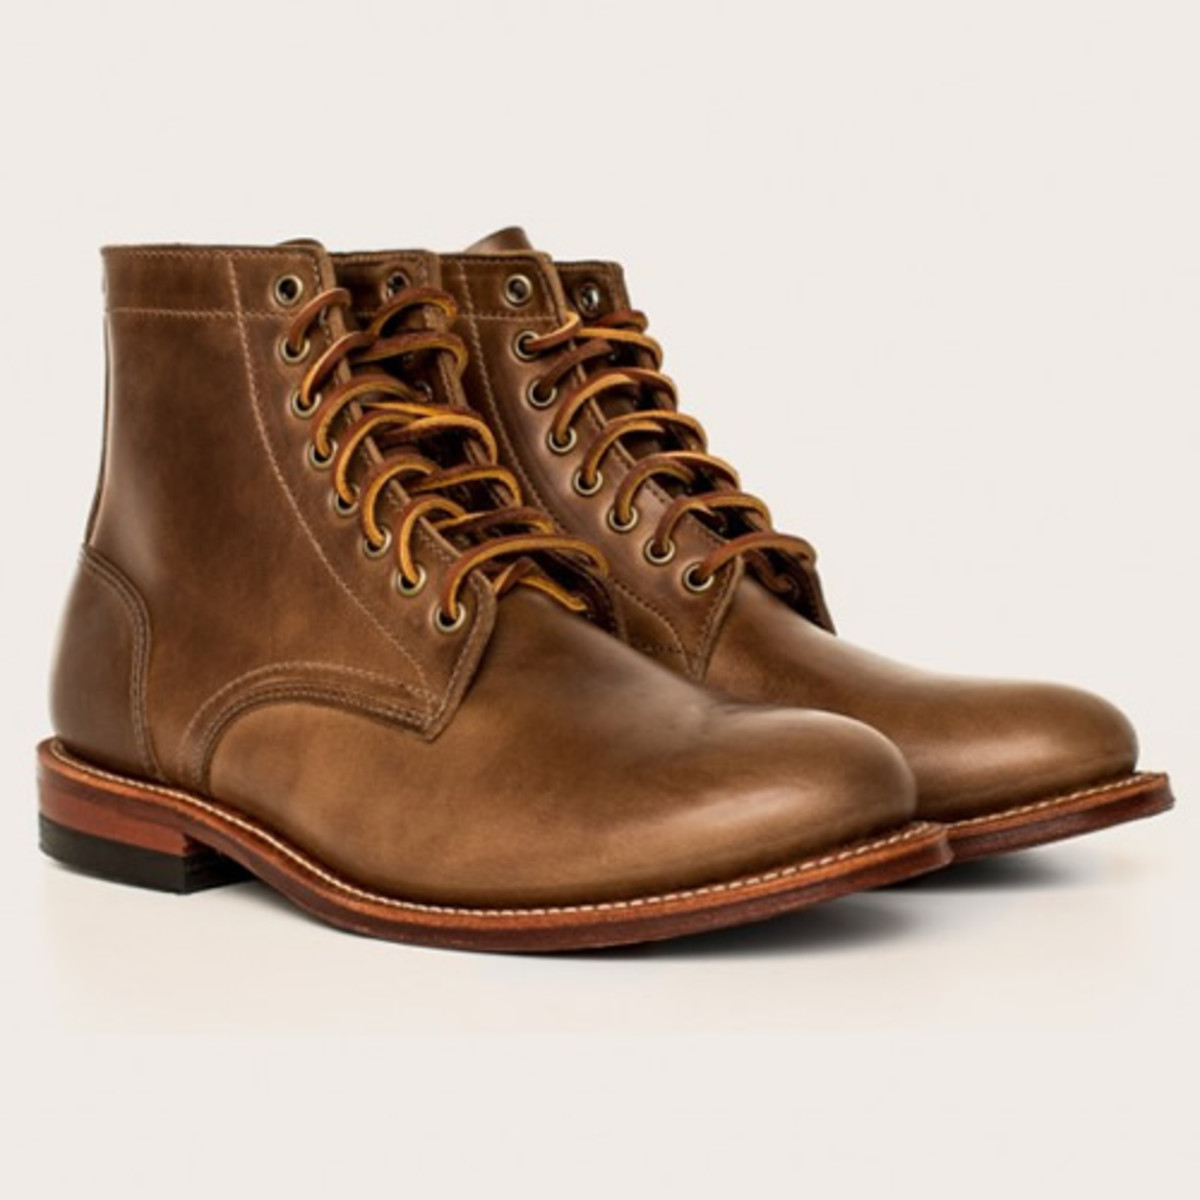 oak street bootmakers trench boot review